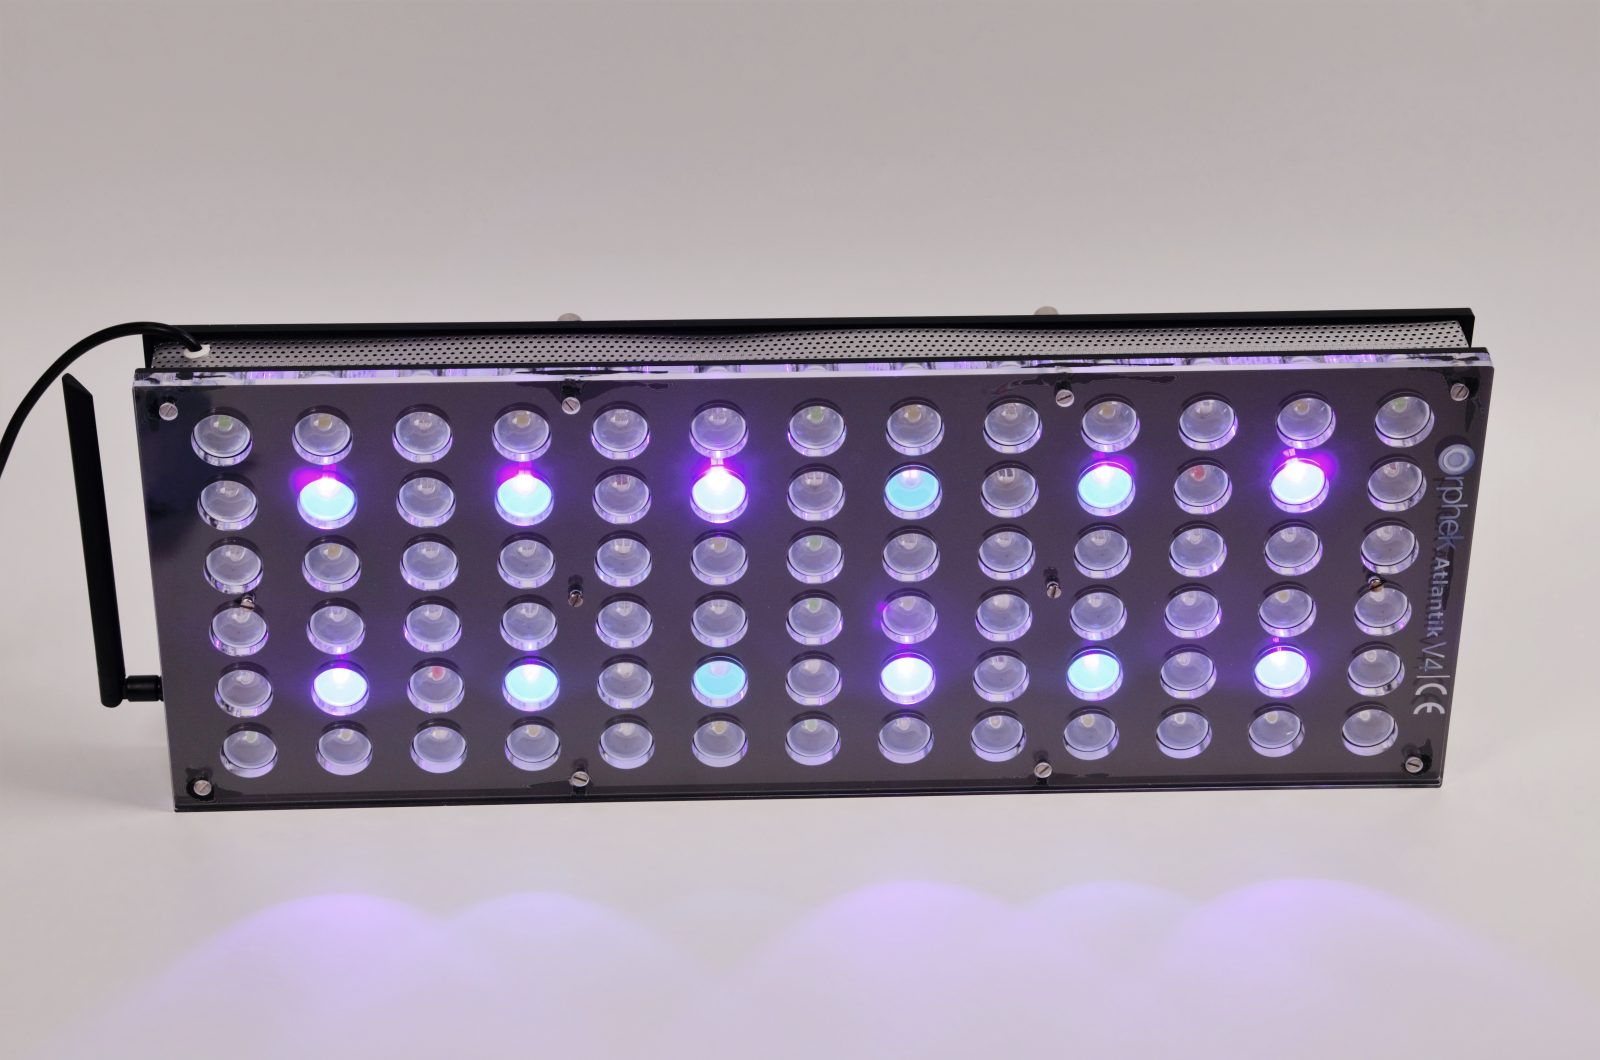 Orphek-Aquarium-LED-Lighting-Reef-Atlantik-V4-אור בערוץ 3